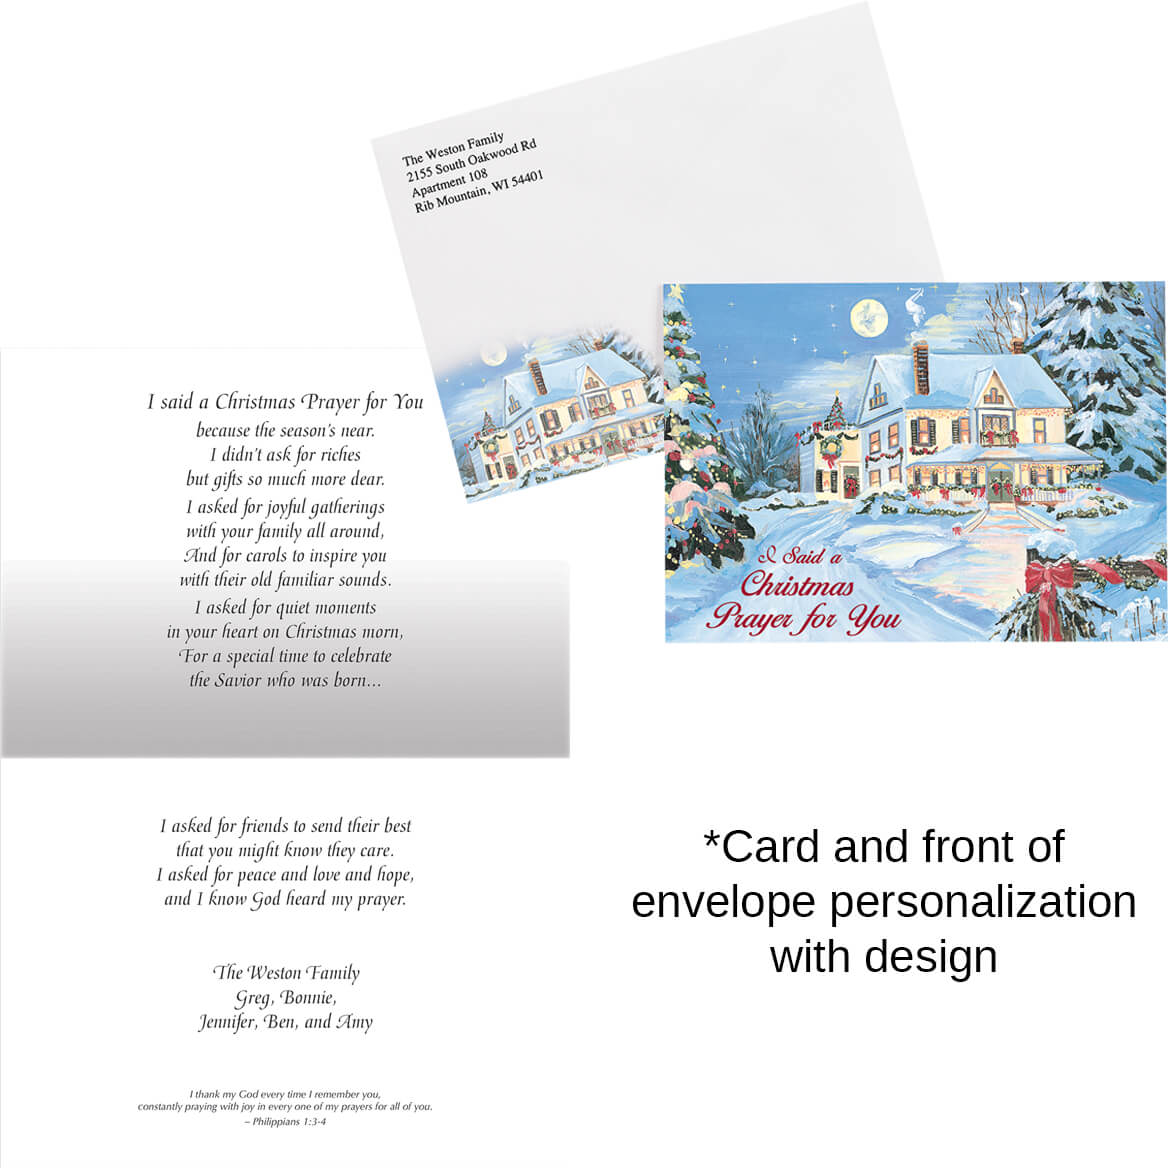 Personalized I Said A Christmas Prayer Card Set of 20 - Miles Kimball